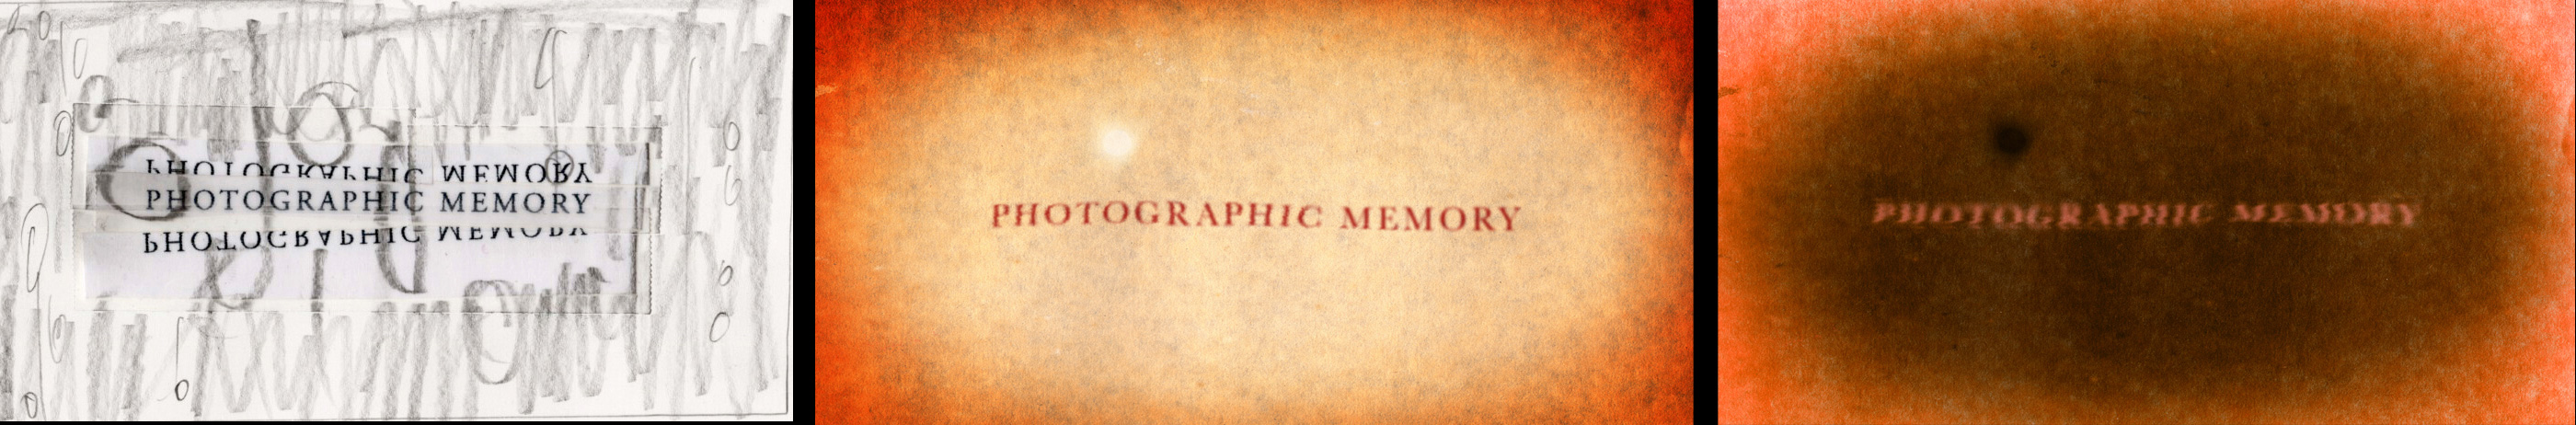 PhotographicMemorySB-1b